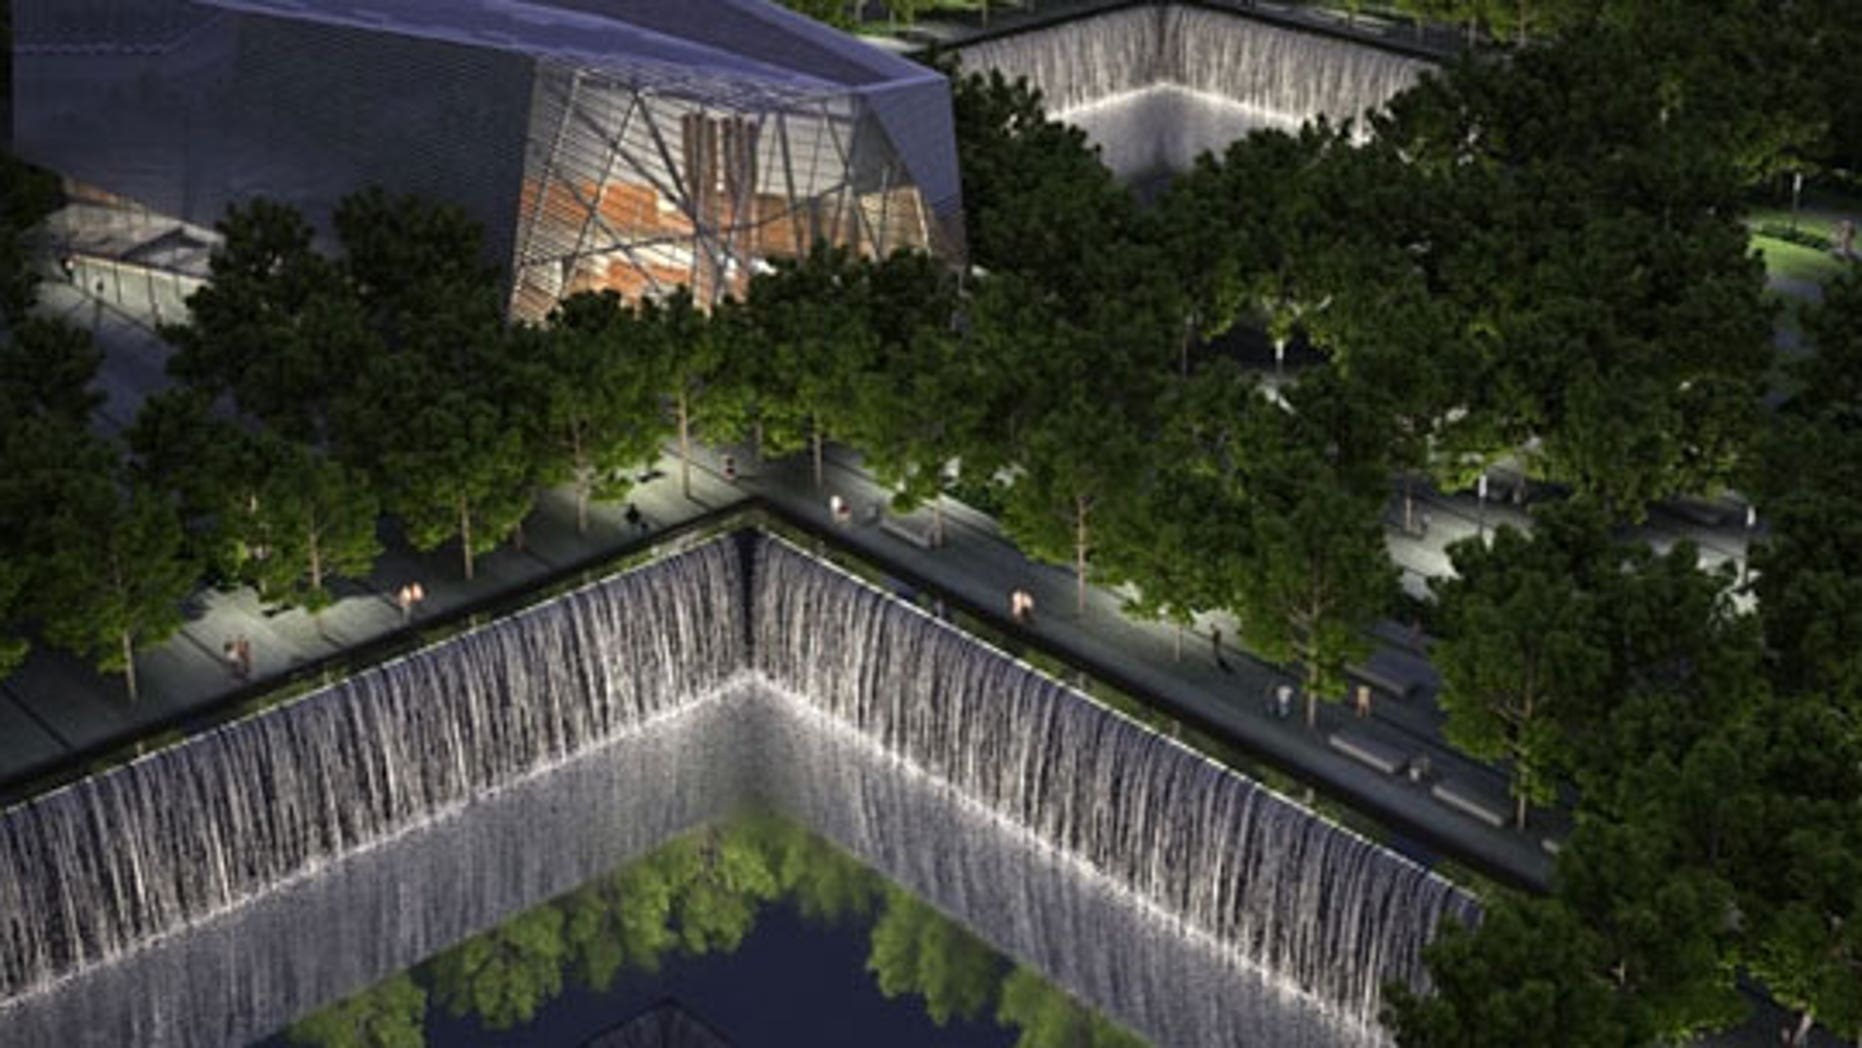 The Memorial & Museum at night. Rendering by Squared Design Lab